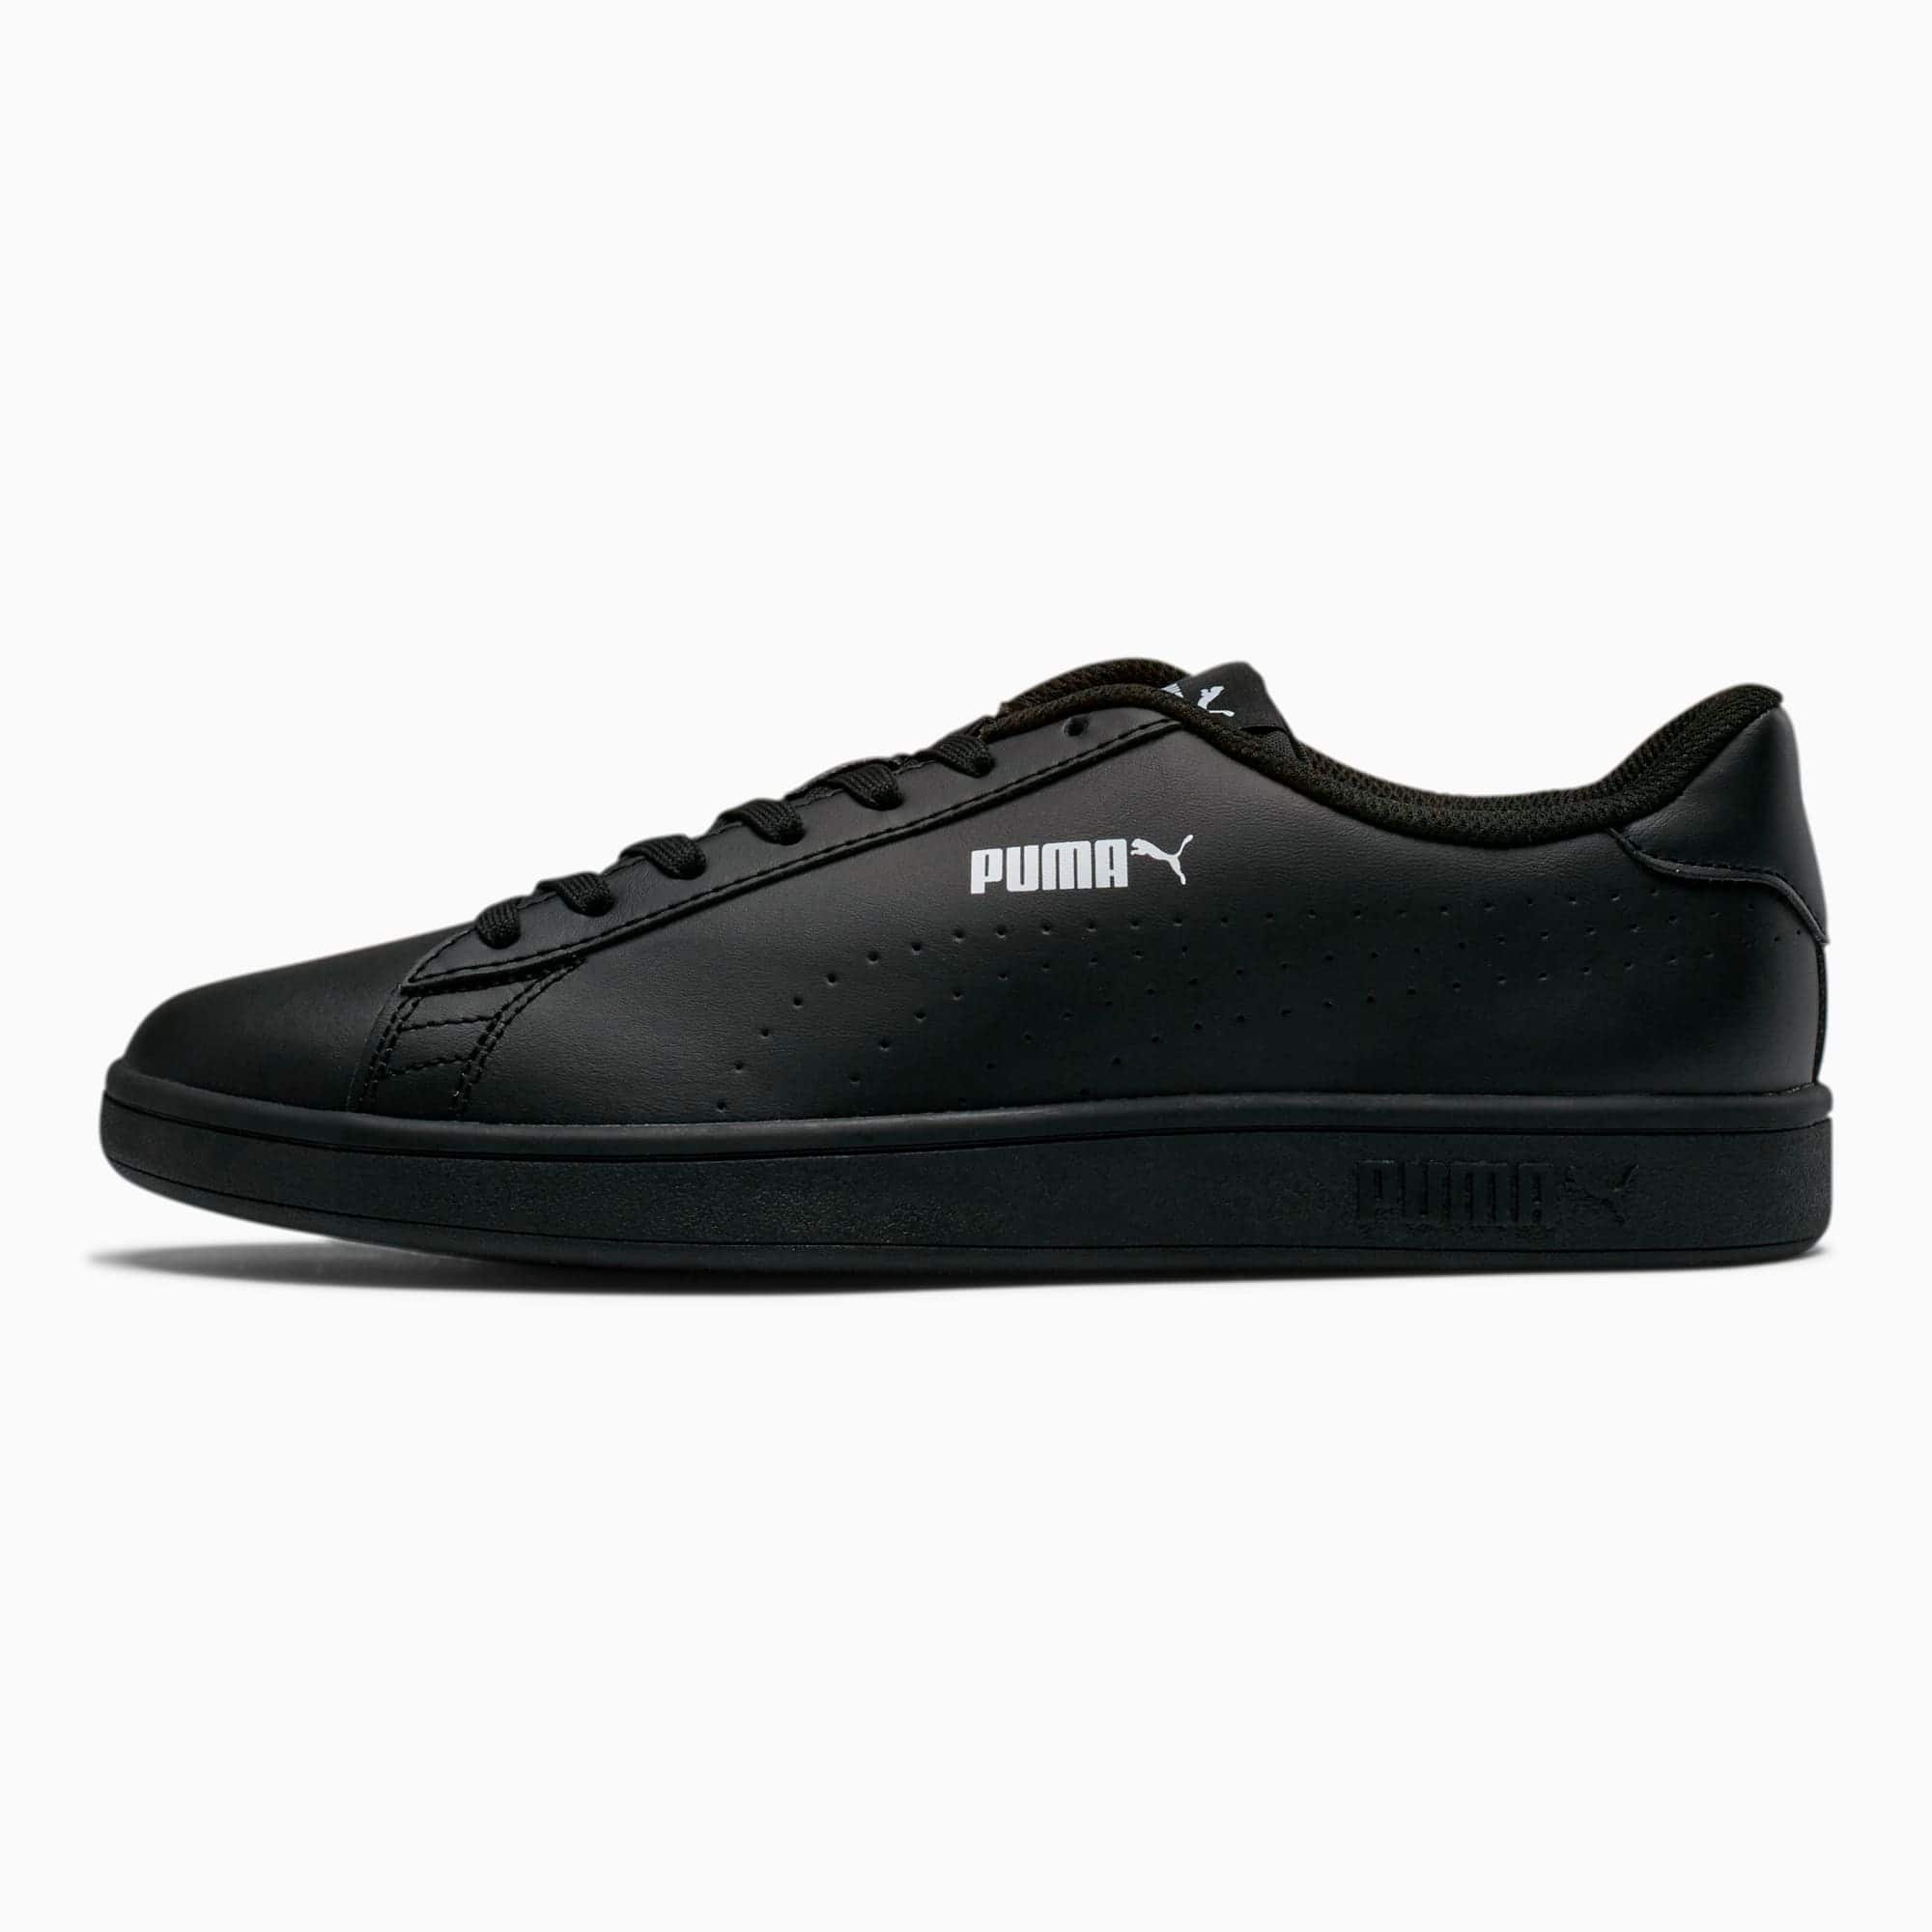 PUMA: Smash v2 Black Leather Sneakers $21, Essentials Men's Tee $6.99, Women's Divecat v2 Slides $10.49, Astro Kick Men's or Redon Move Shoes $21 & More + Free S/H on $35+